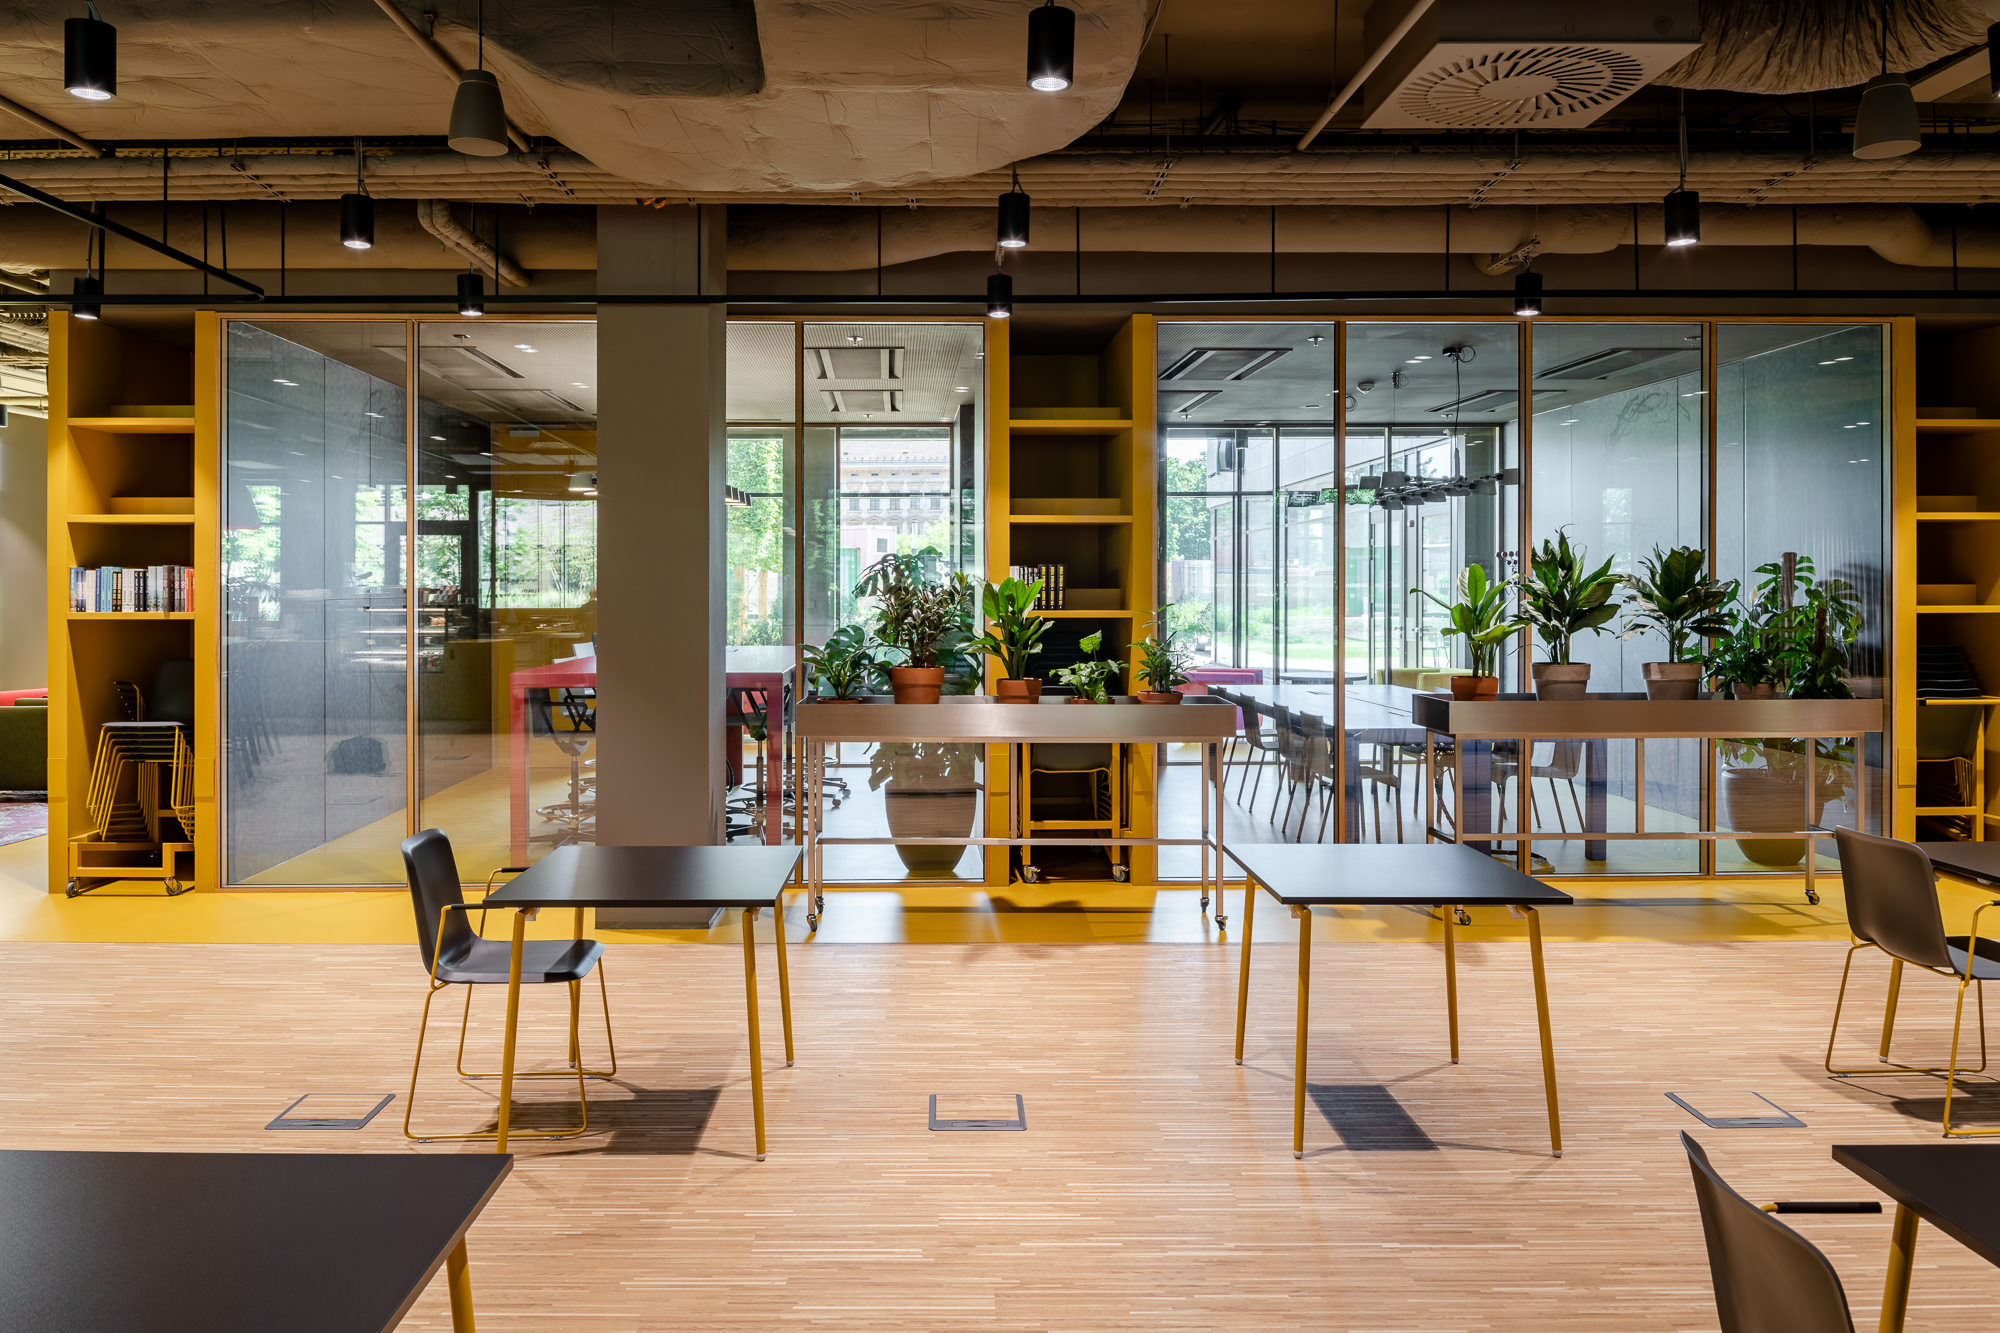 A design gem among coworking spaces